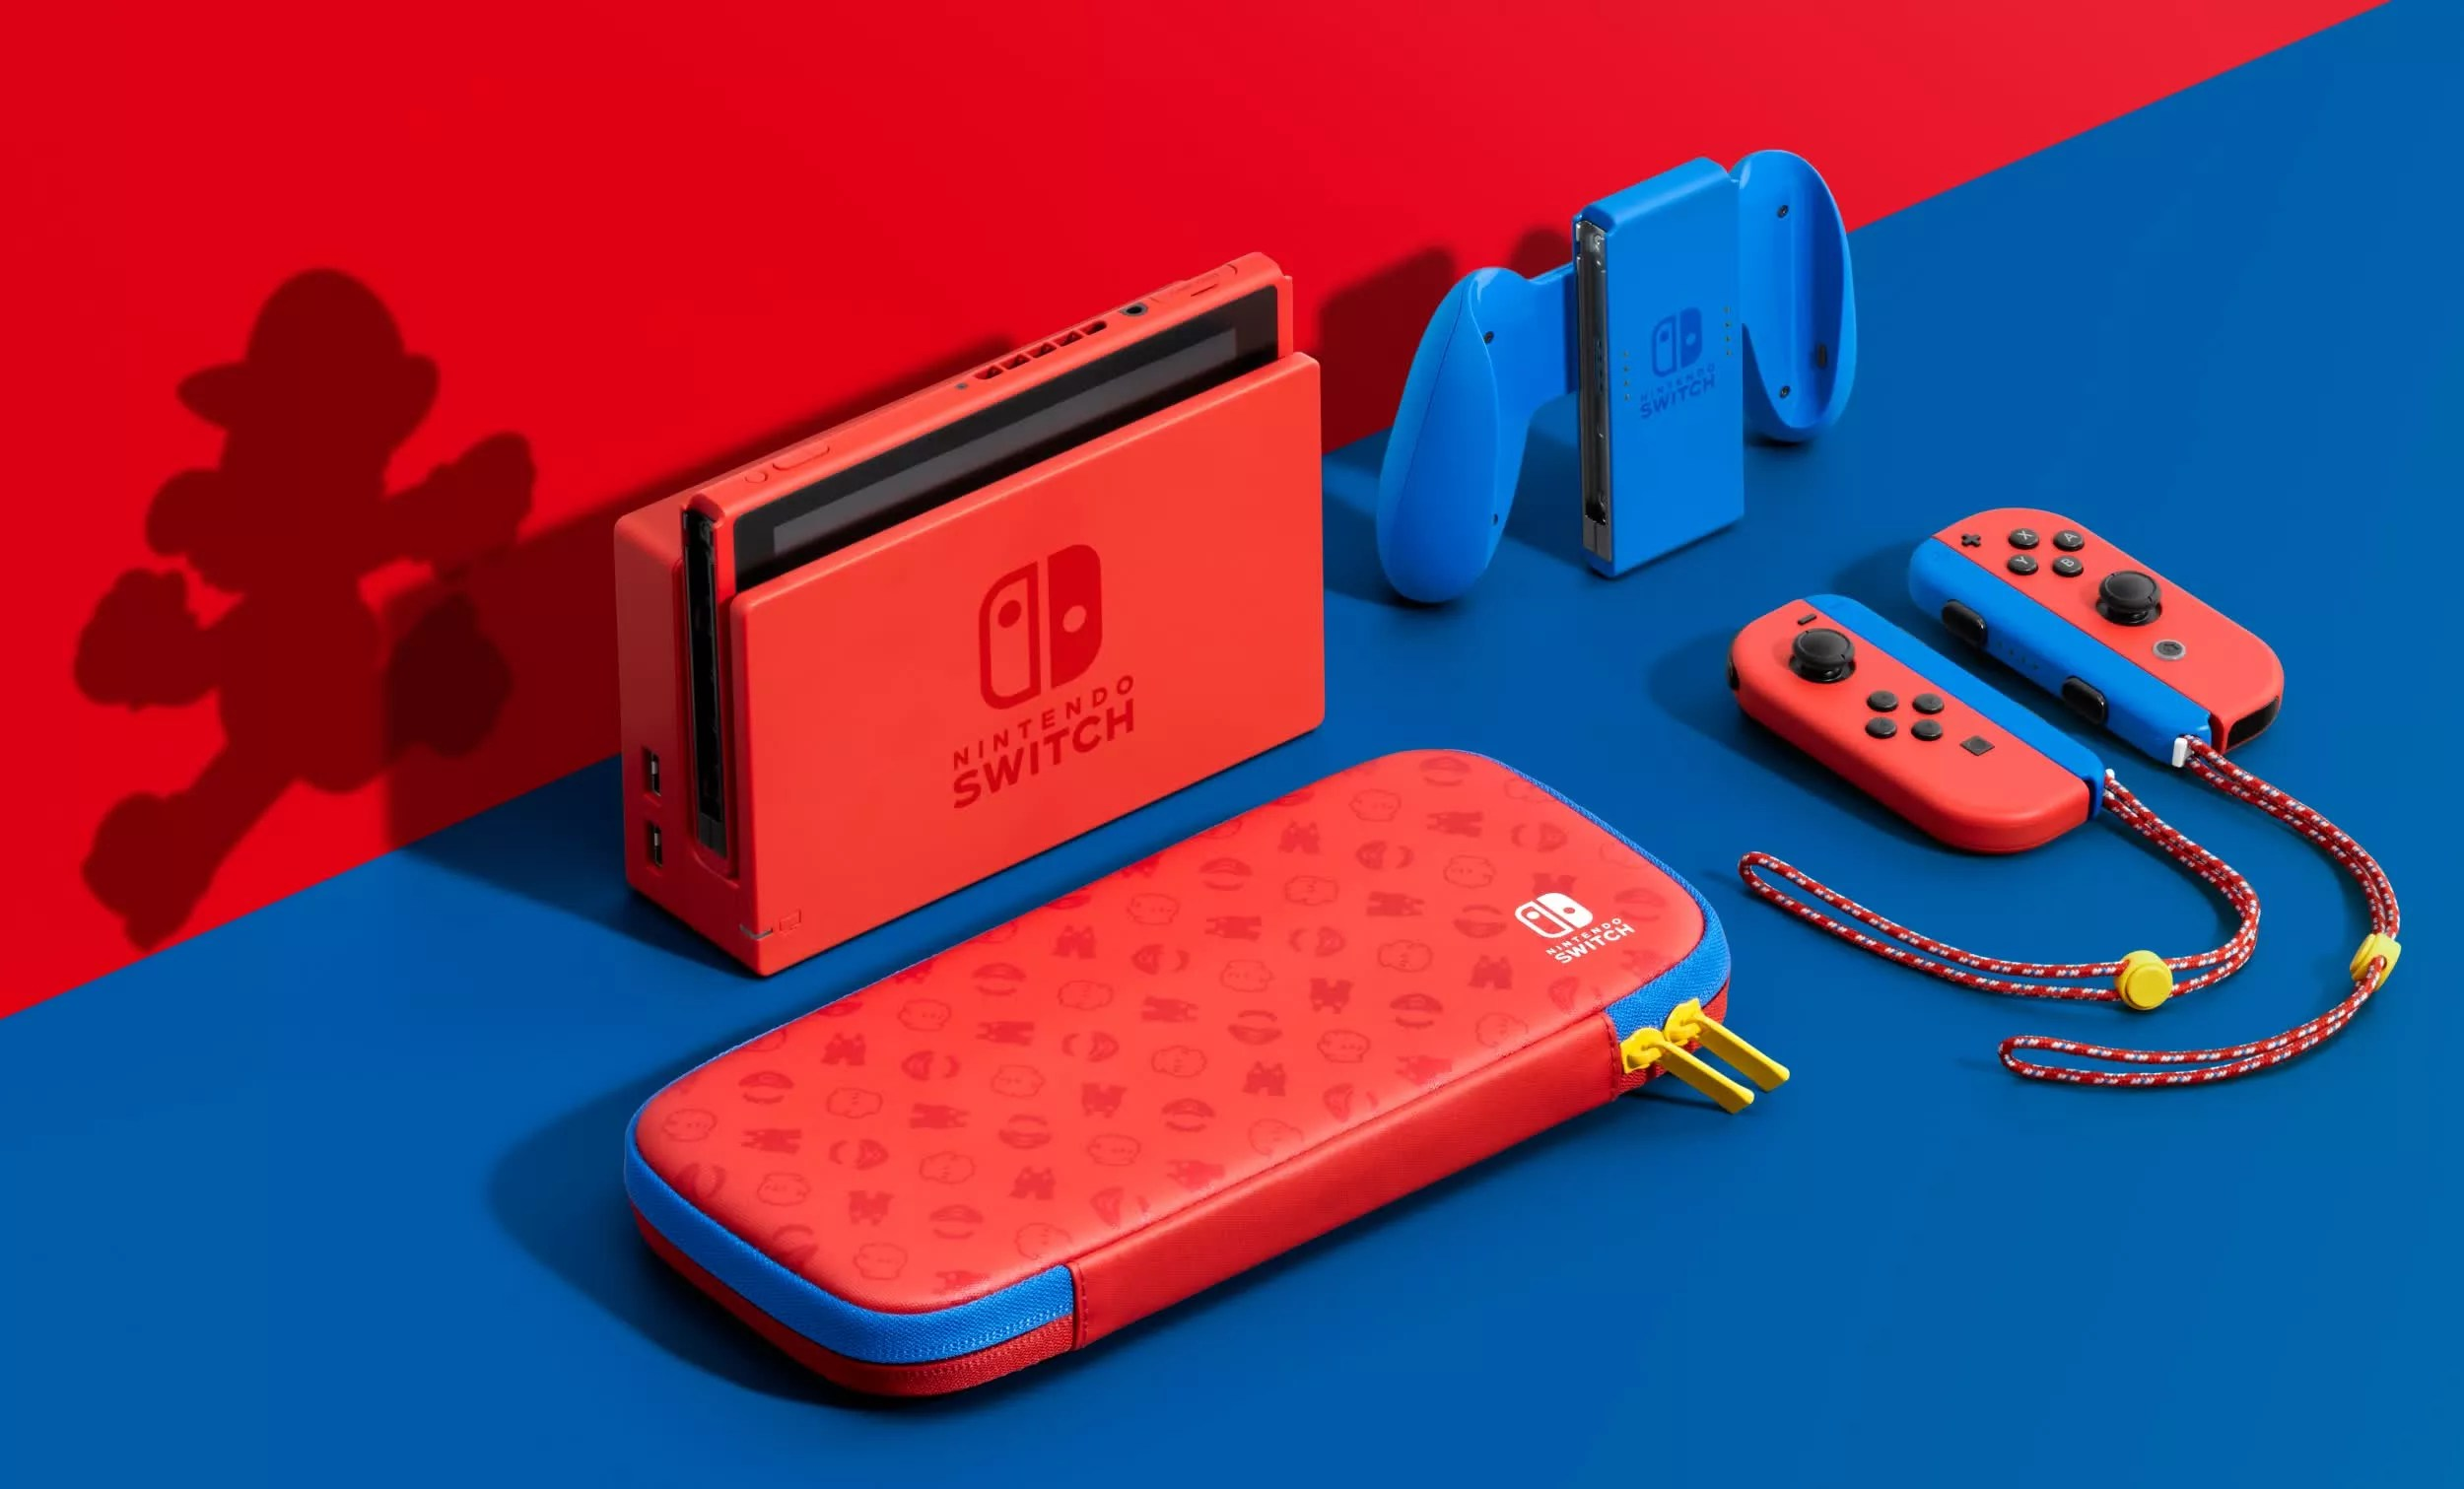 Nintendo introduces Mario Red & Blue Edition Switch, drops new Super Mario 3D World + Bowser's Fury trailer